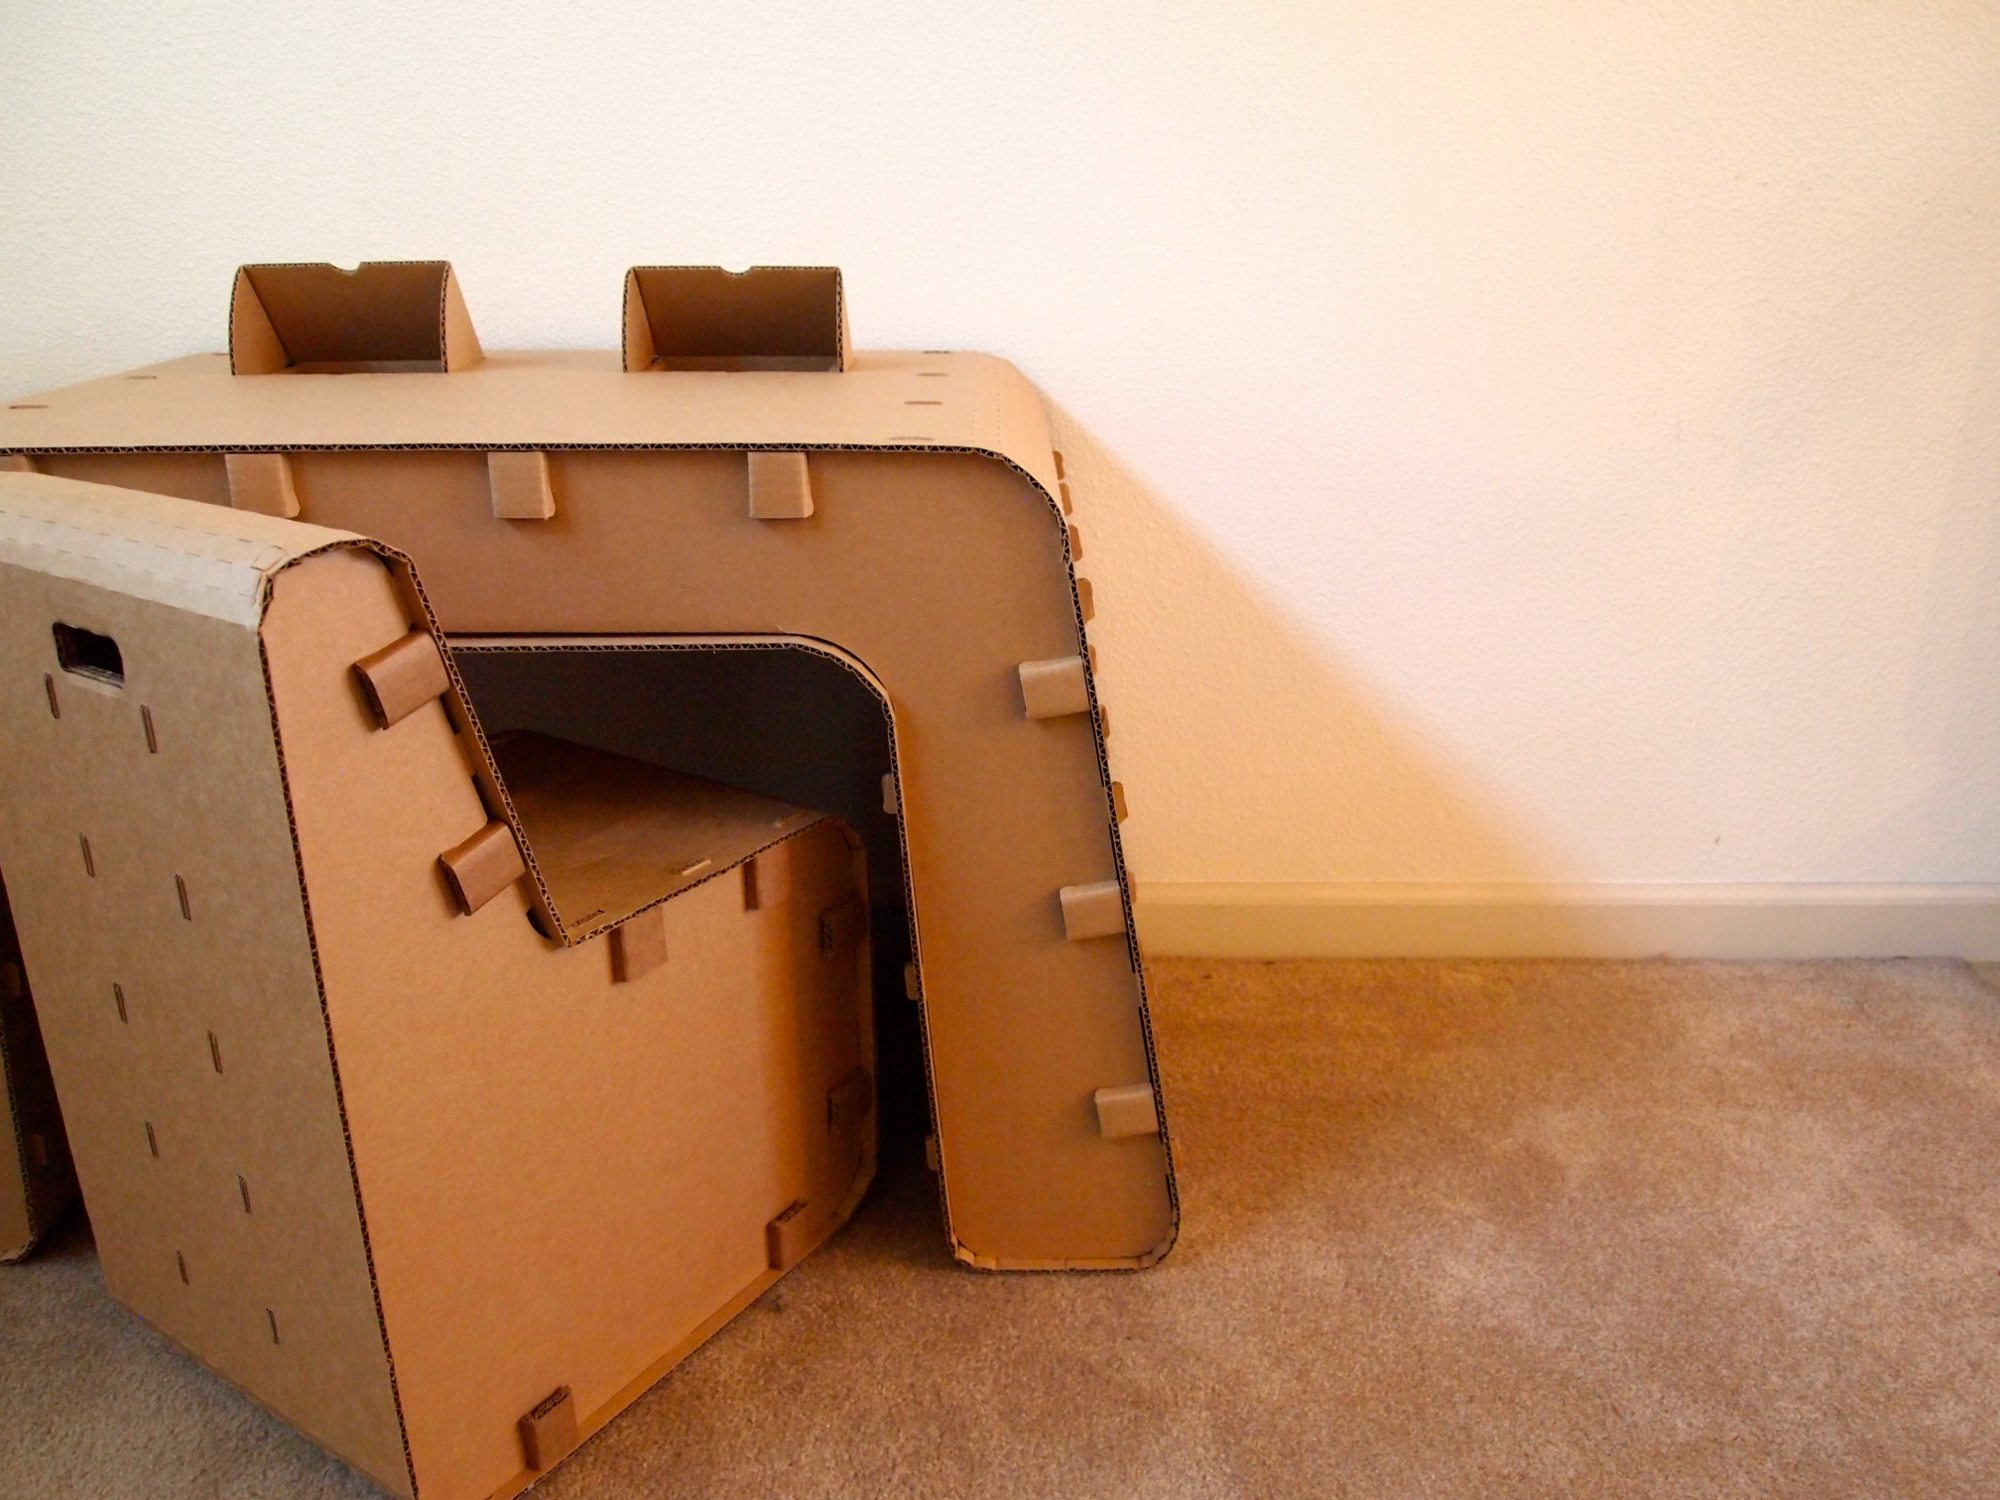 Kickstarter: Kids Imagination Furniture by The Cardboard Guys